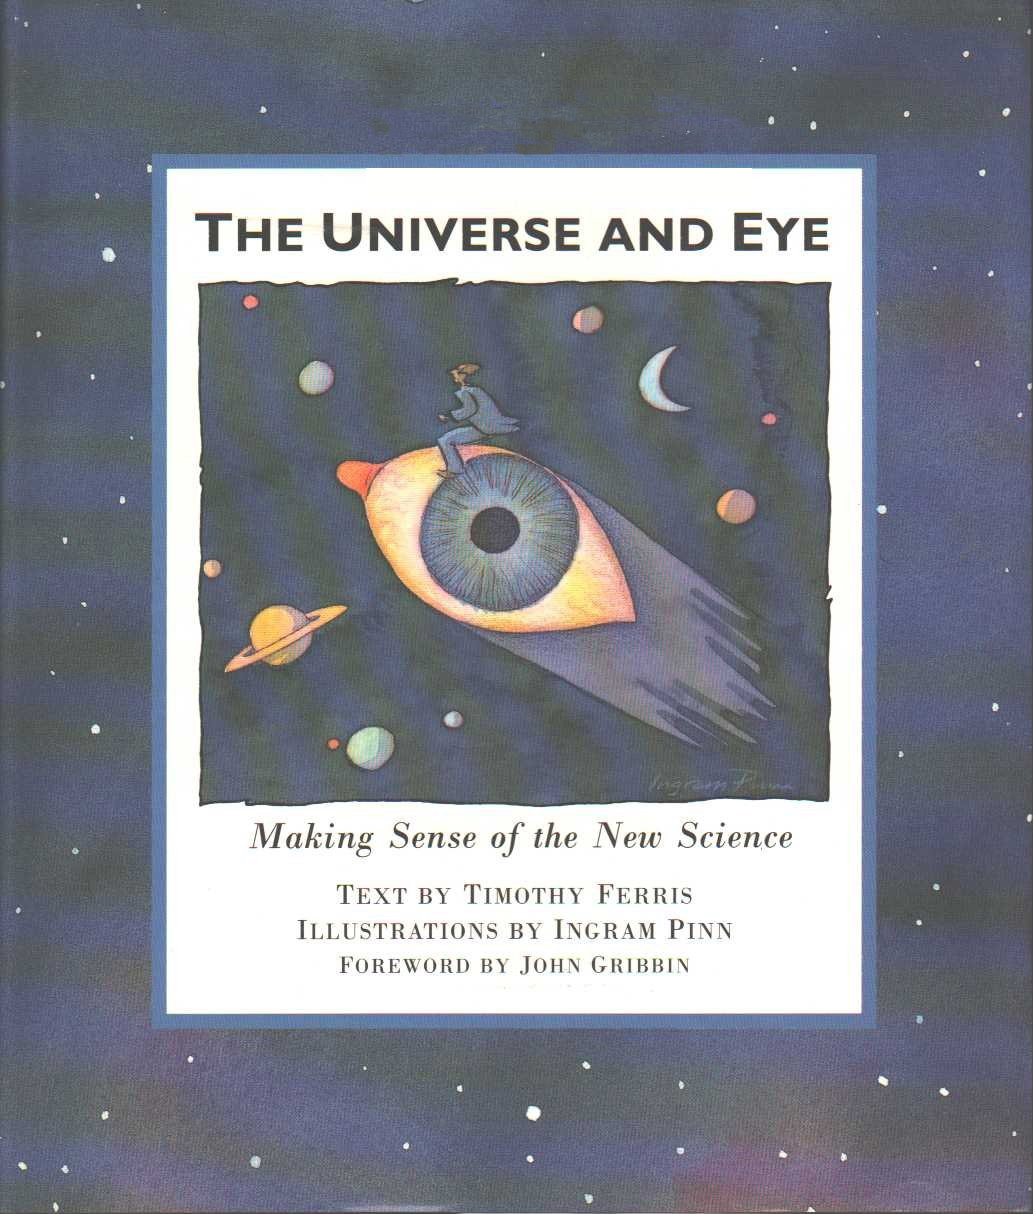 The Universe and Eye